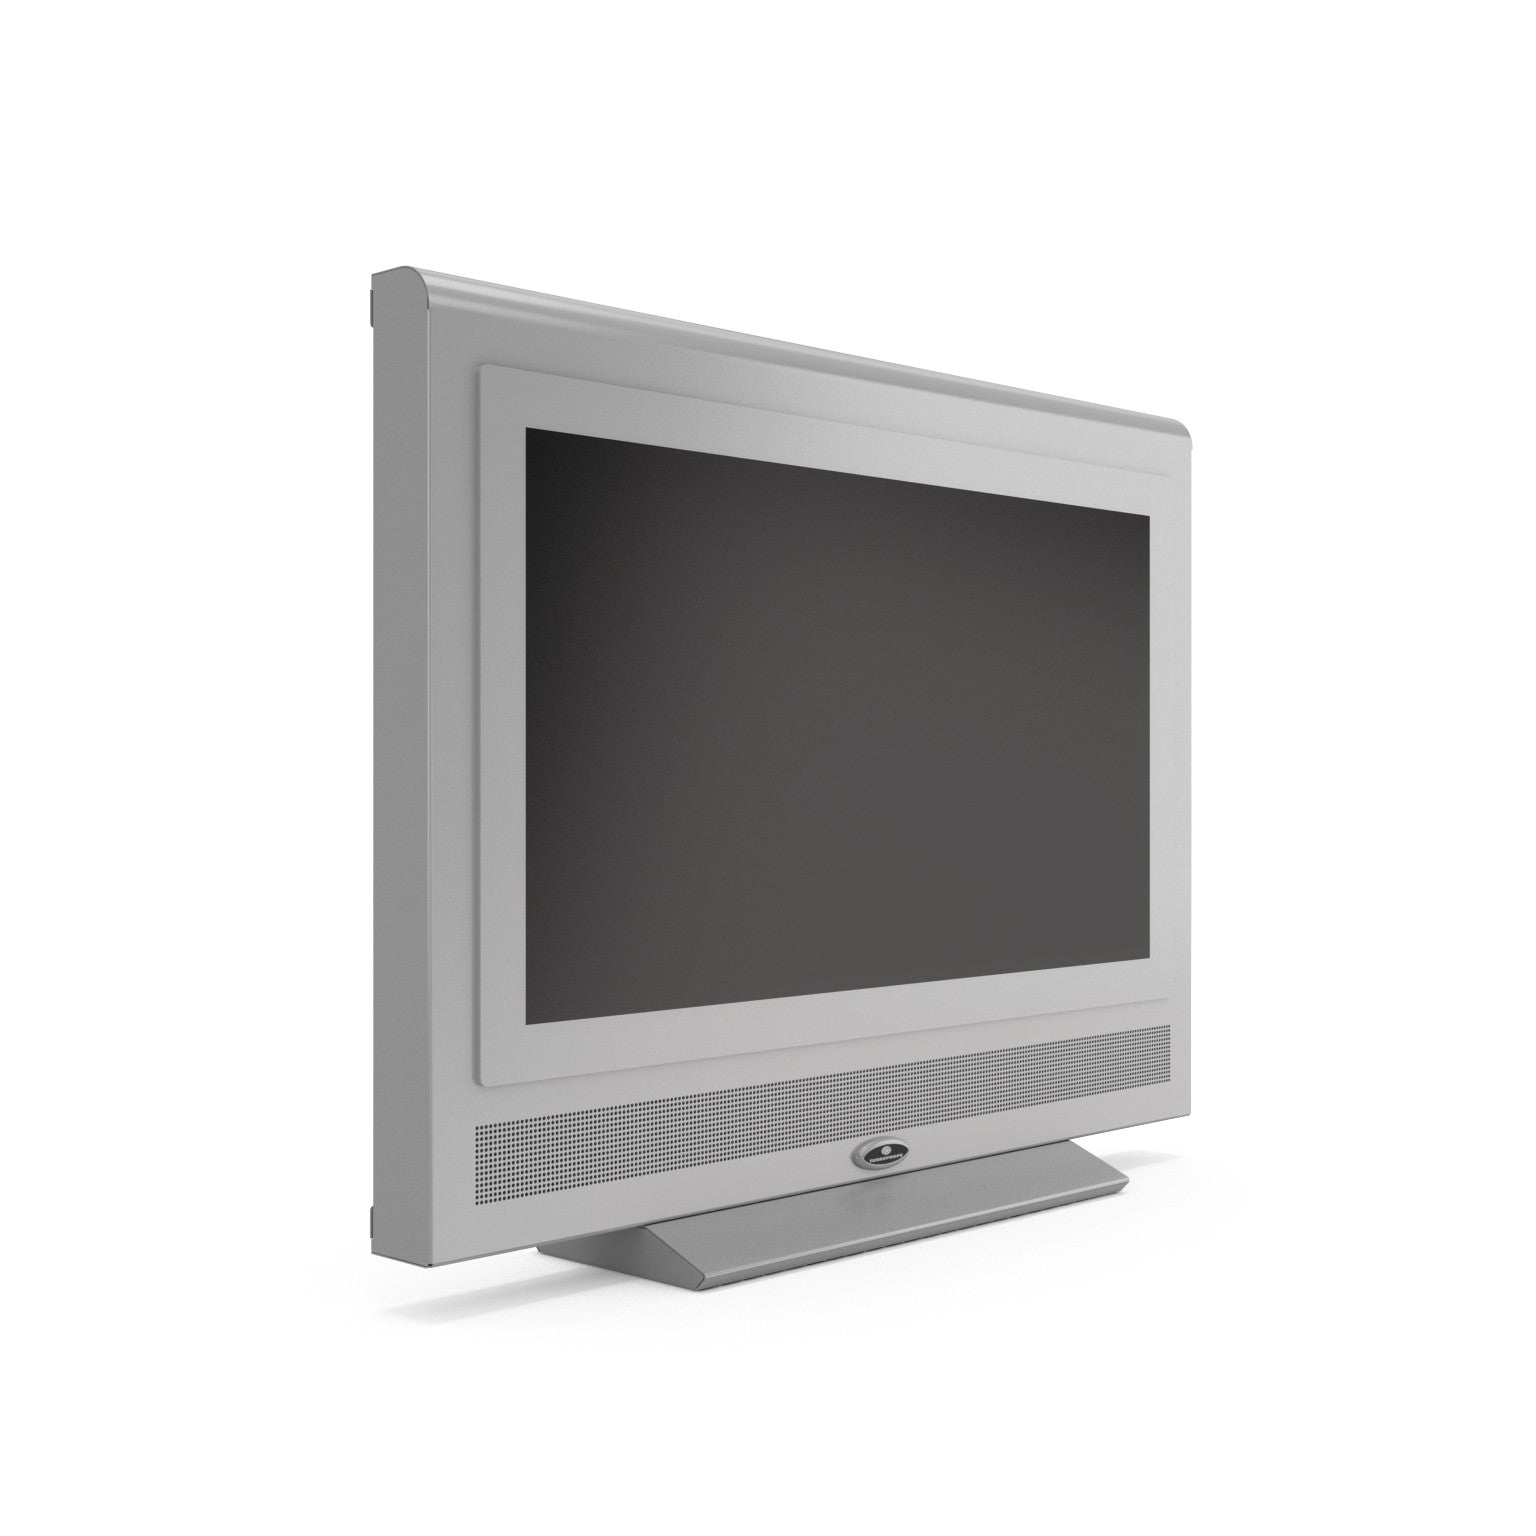 26 inch platinum LCD monitor prop